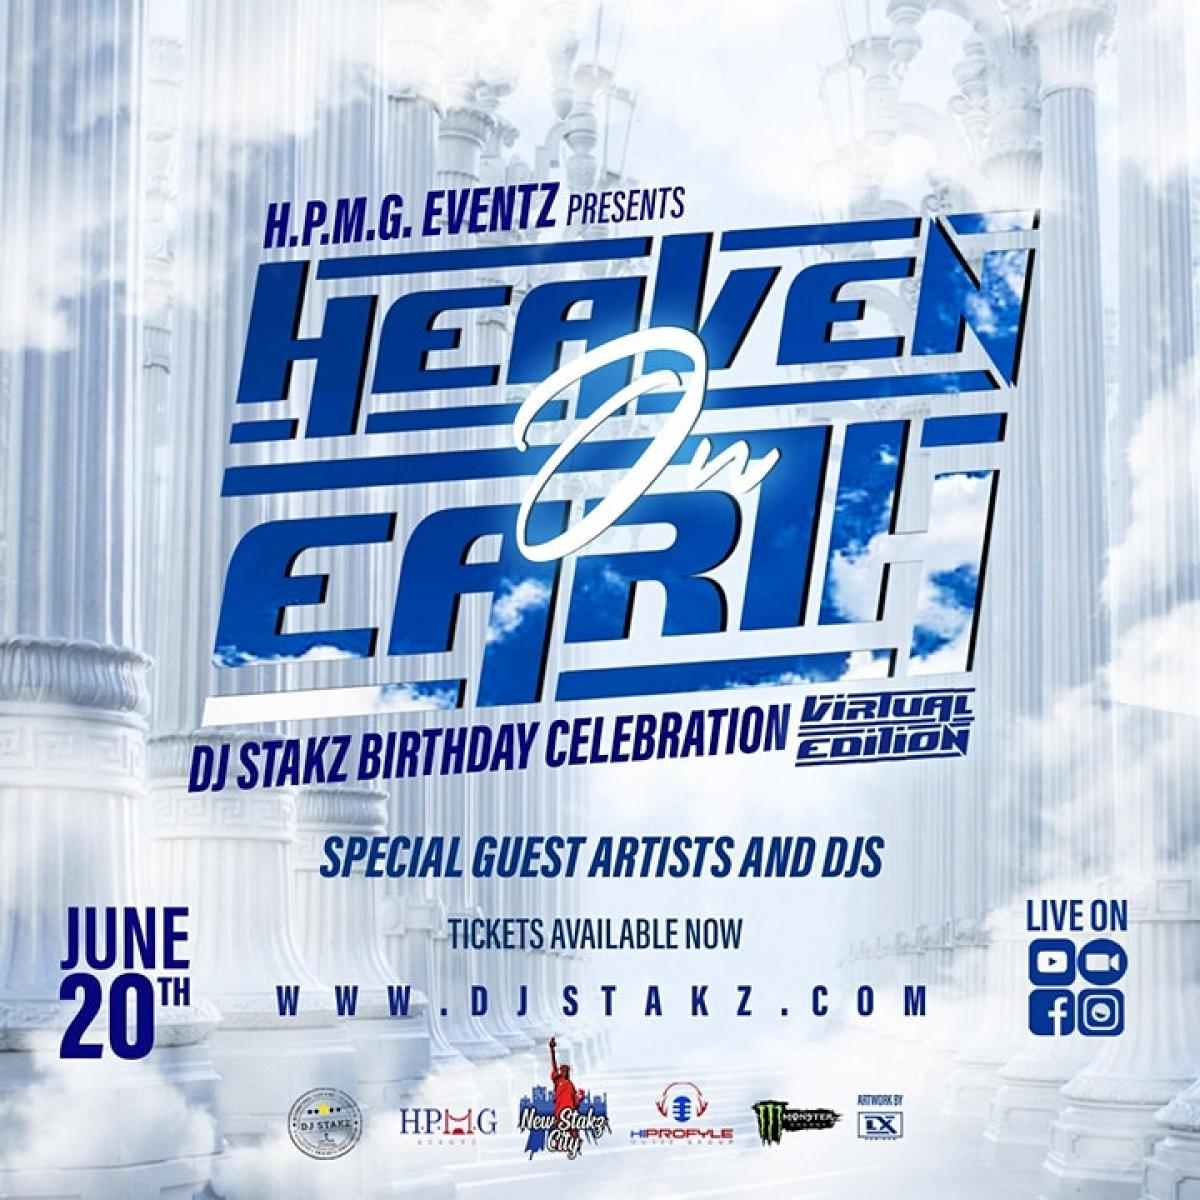 Heaven On Earth flyer or graphic.